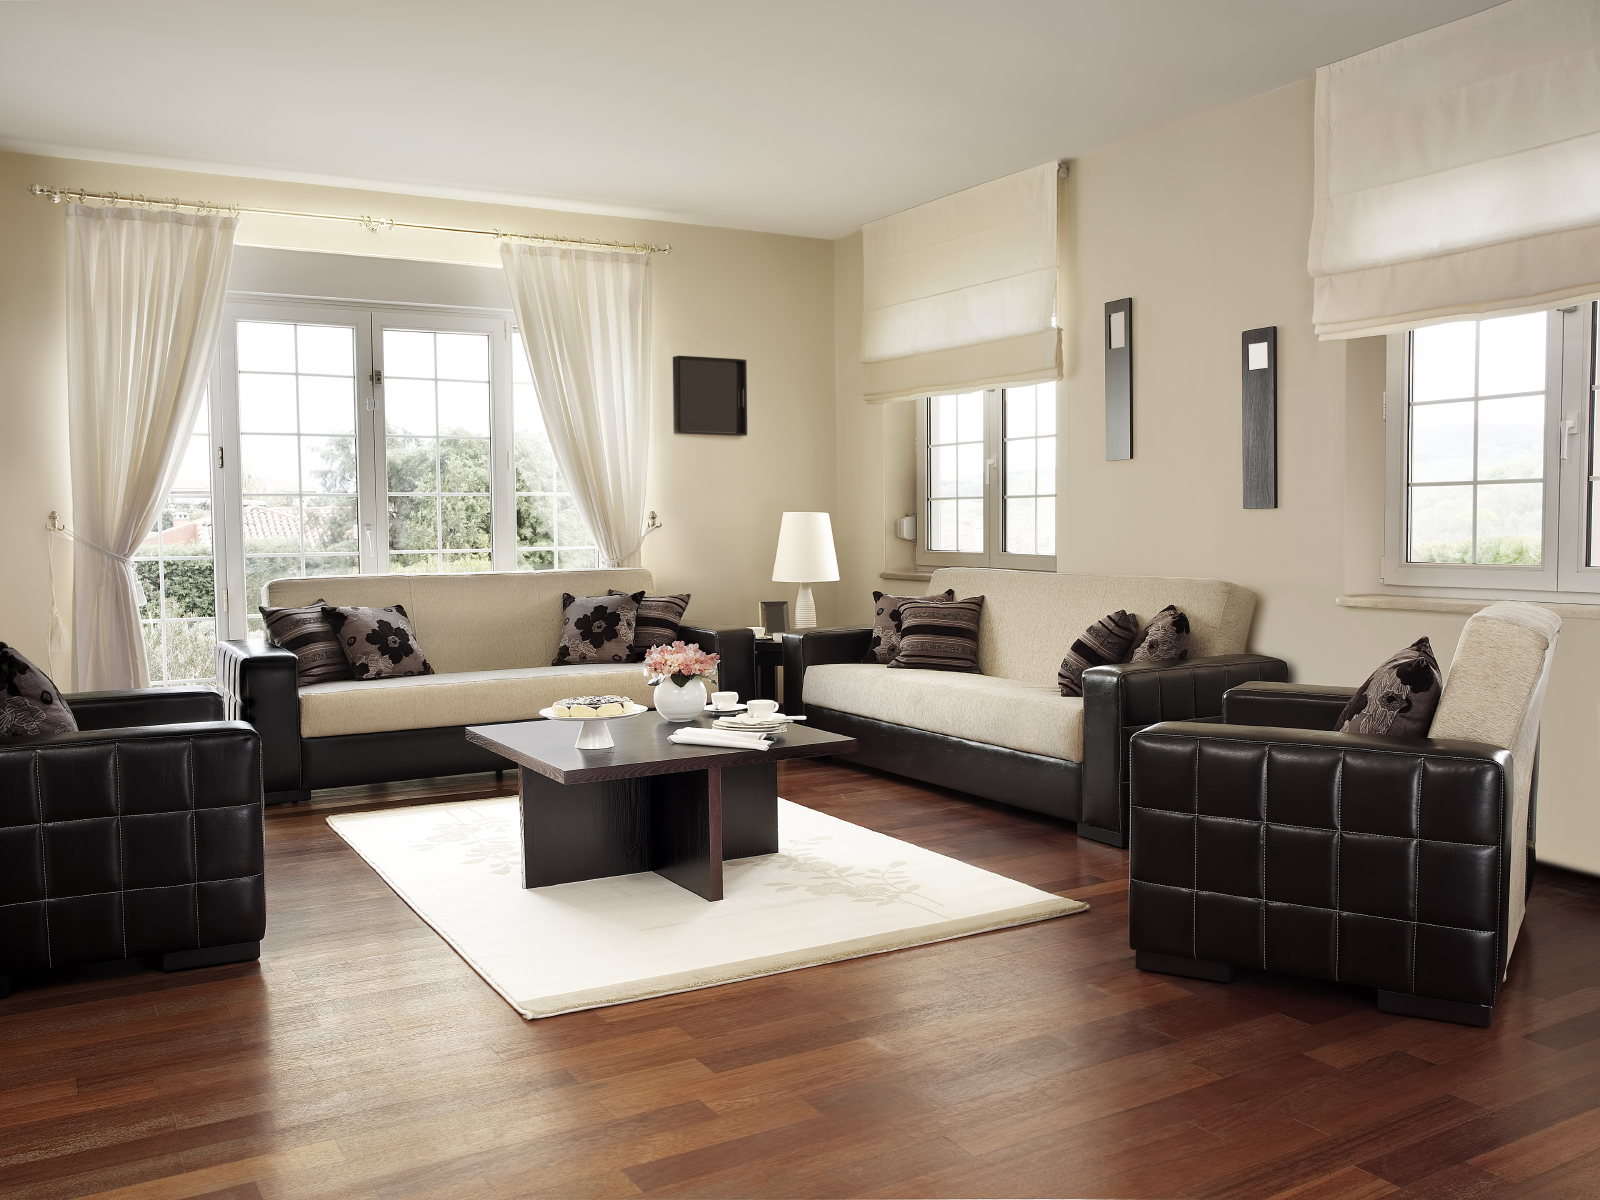 Couch and chair set with white single-piece cushions and black quilted arms. Roman shades on the two right windows. The couch is several feet in front of the glass doors, allowing for all the room's space to be utilized.